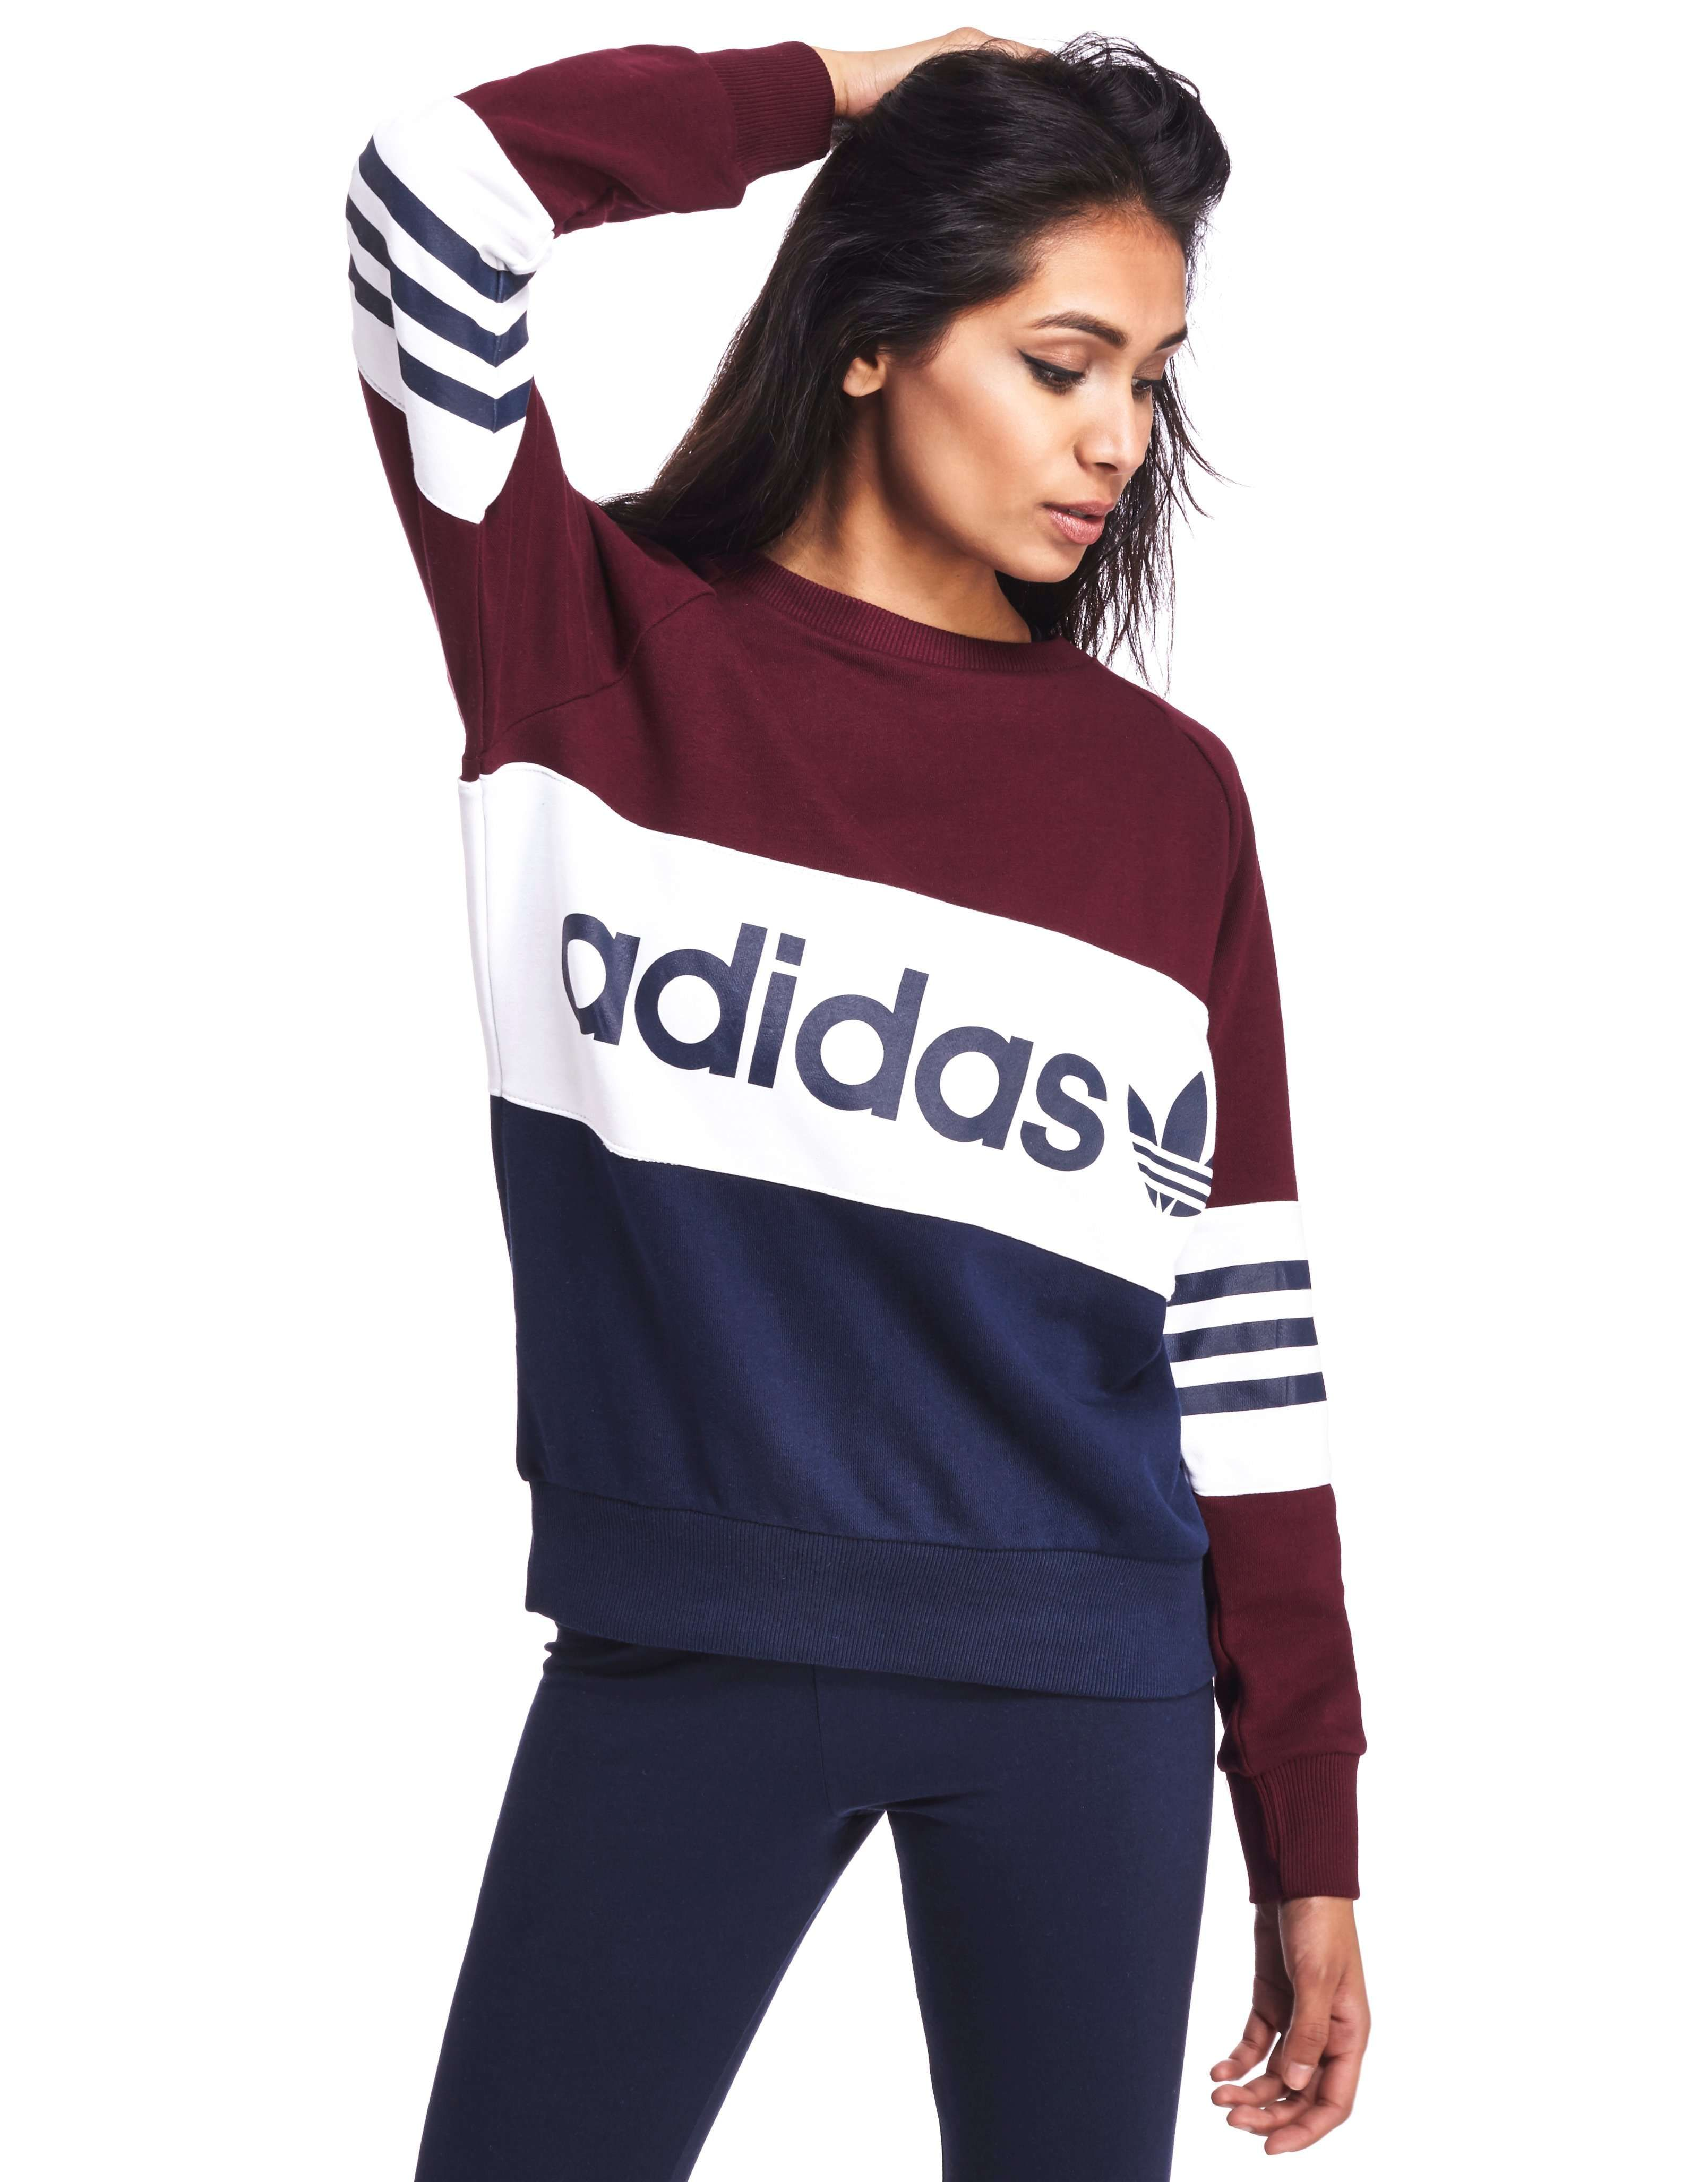 f04a03d8a038c5 iridescent jacket Adidas Hoodie, Adidas Crew Neck, Adidas Tracksuit, Adidas  Sportswear, Outfits